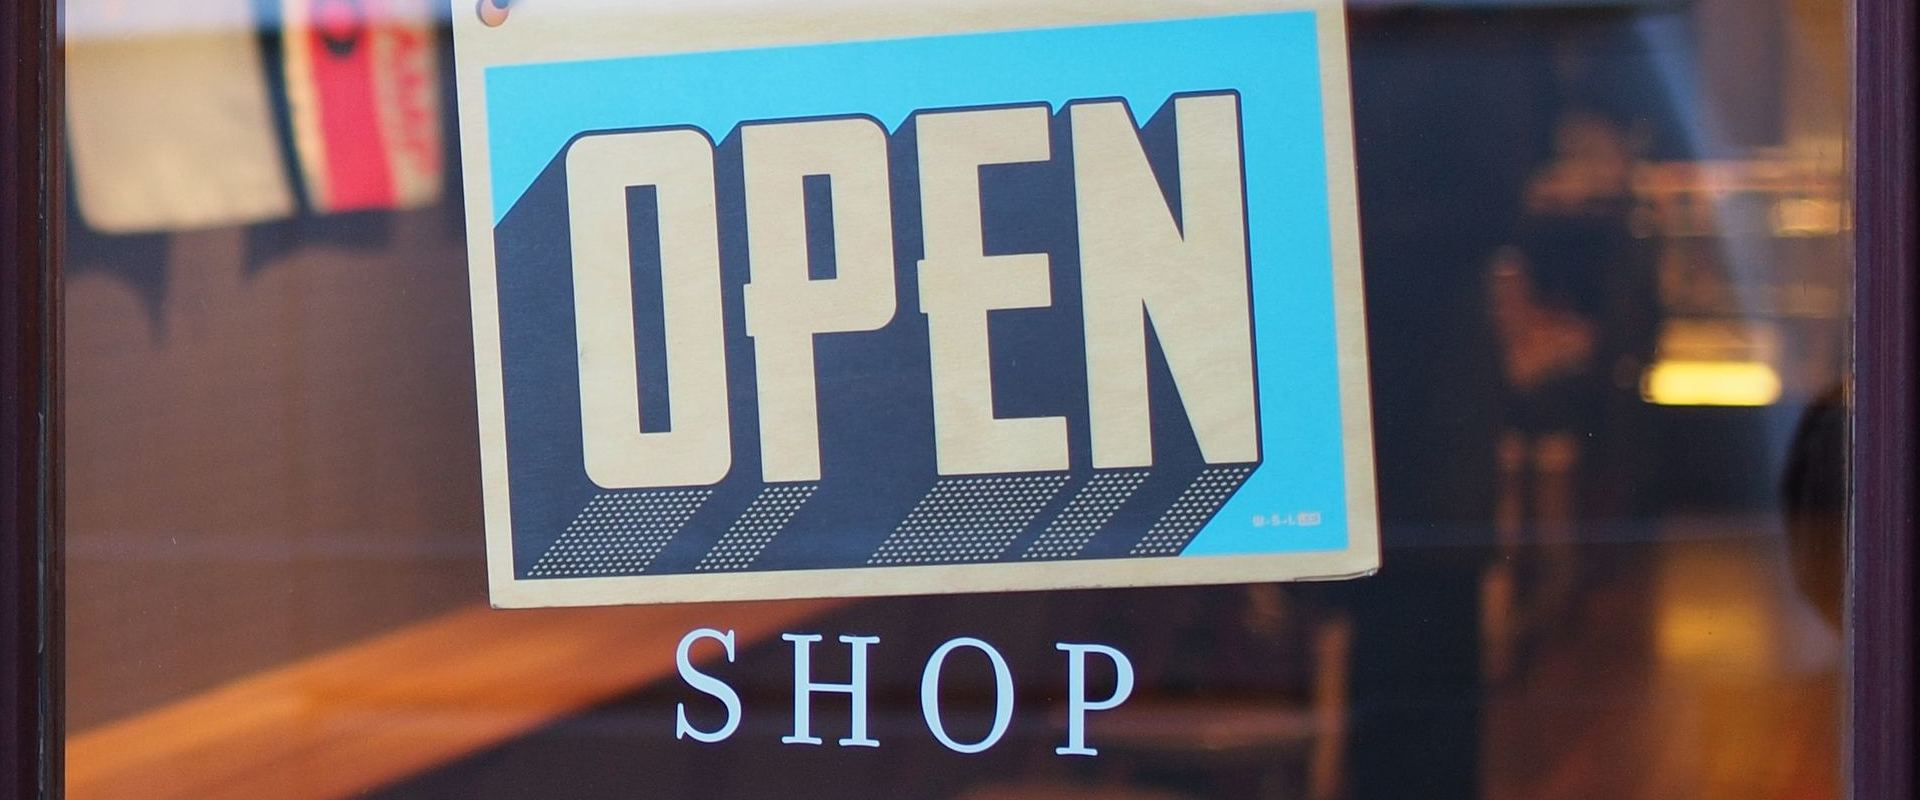 Open sign in a retail shop front window representing the creation of a remarkable retail shopping experience